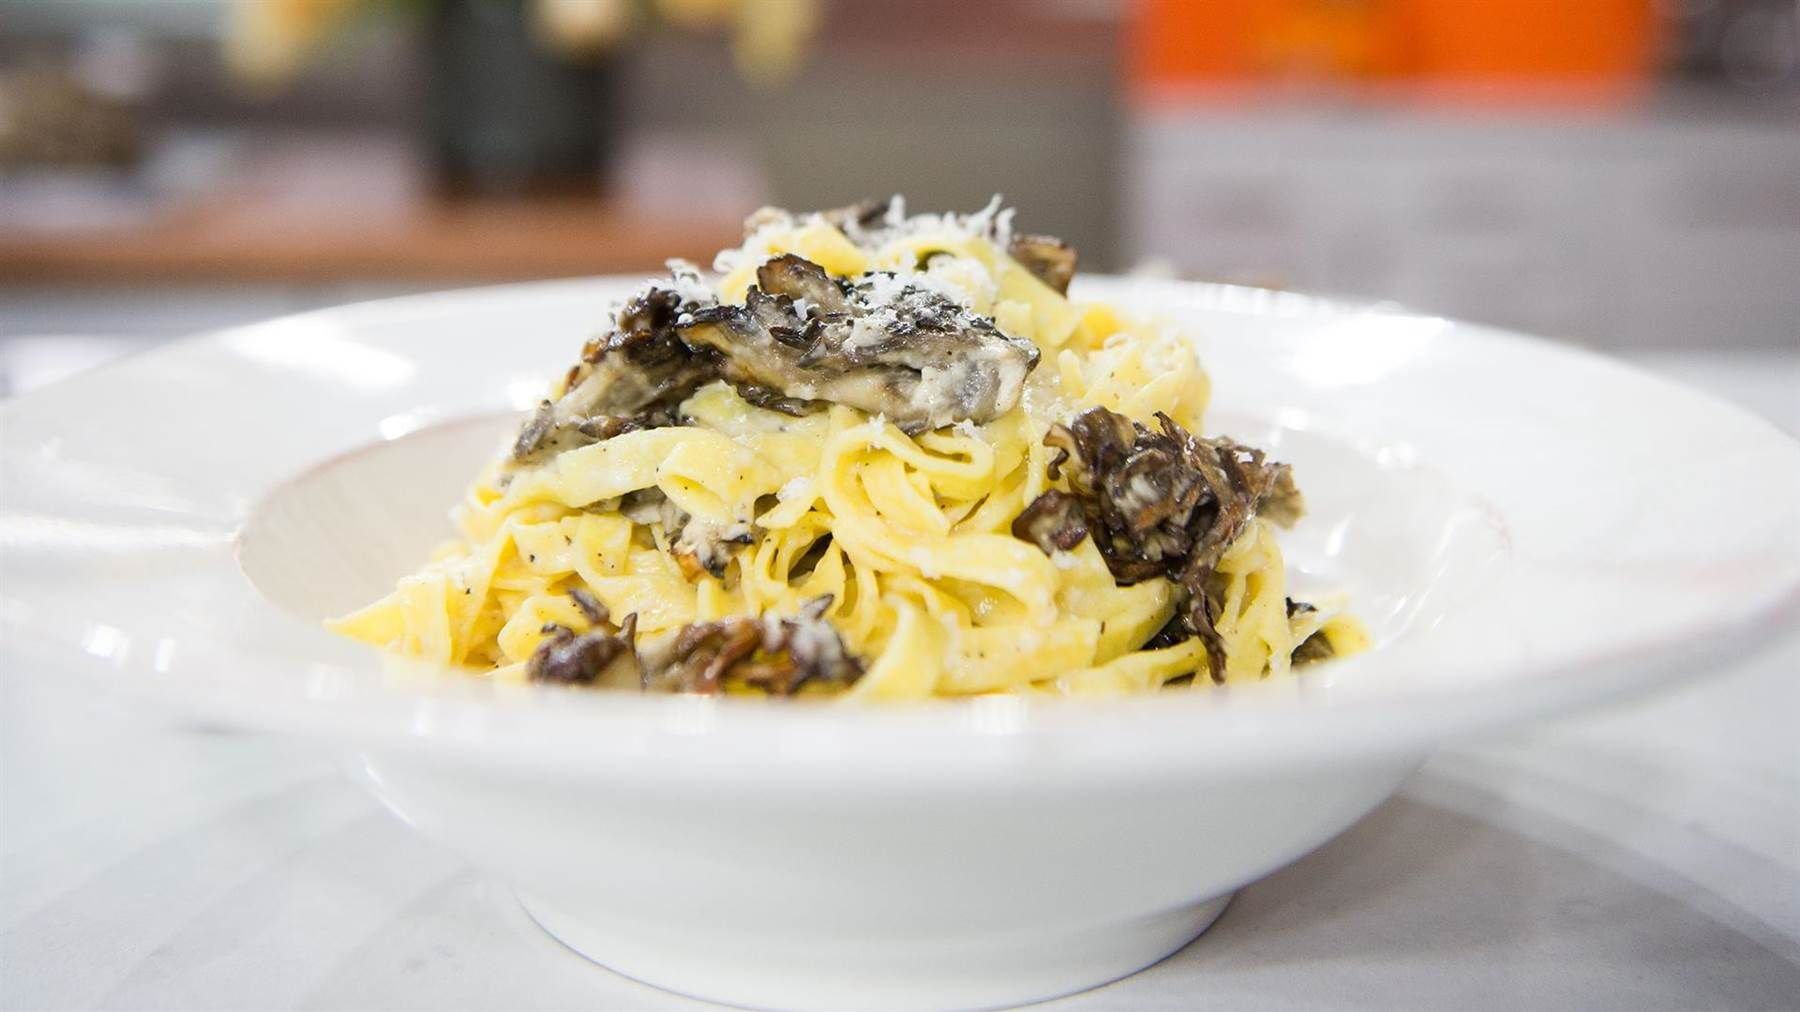 Vegetarian pasta with mushrooms: Tim Love's recipe is hearty, quick and easy